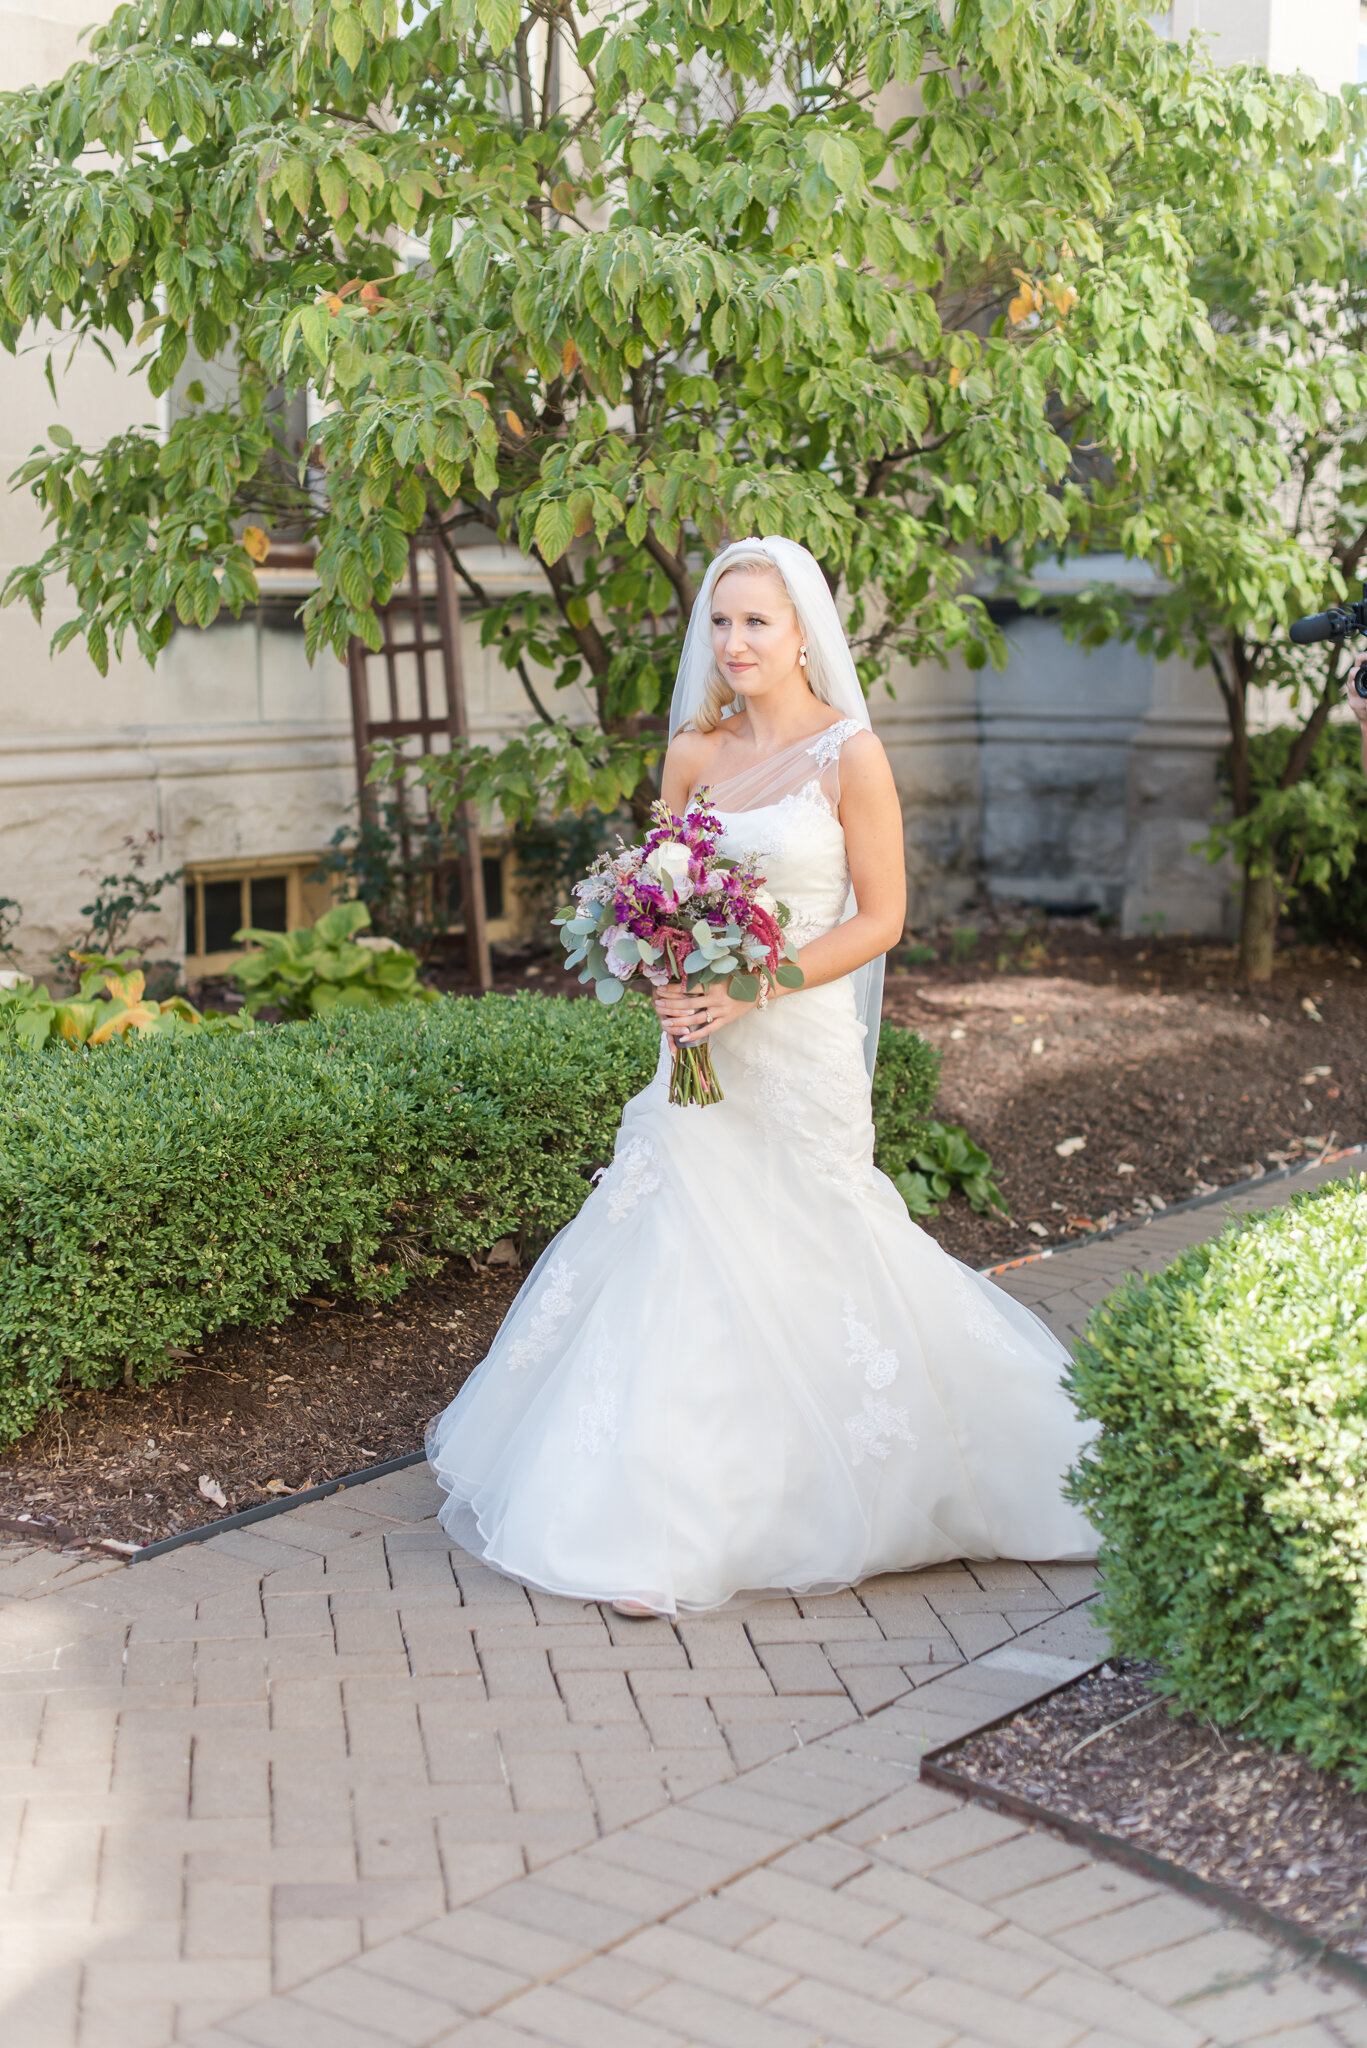 Downtown Indianapolis Wedding at Cyrus Place6559.jpg